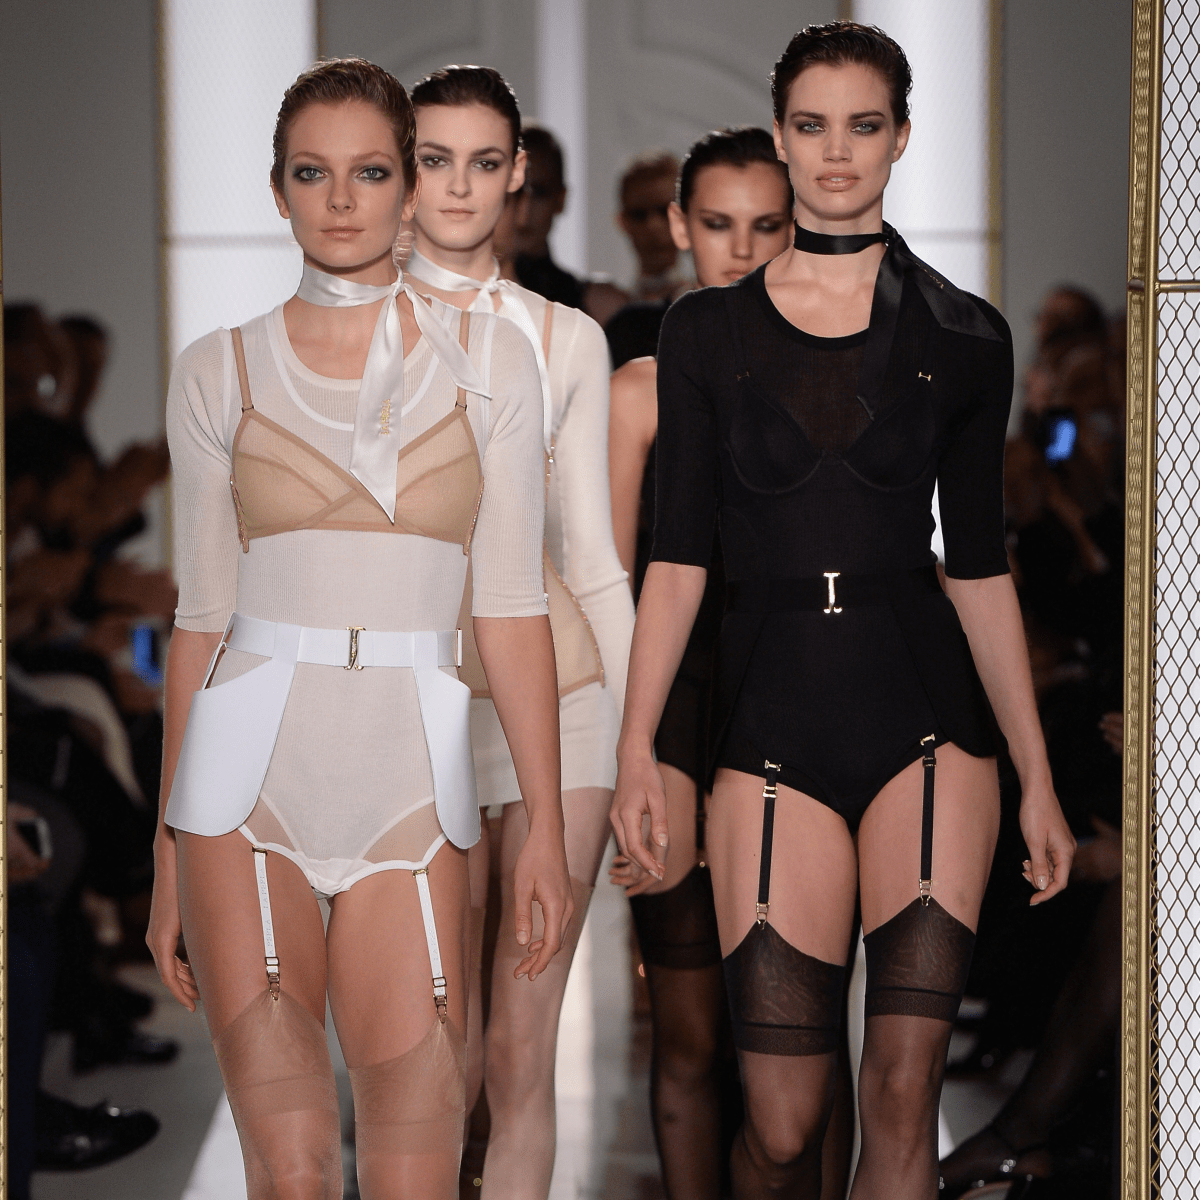 La Perla Atelier collection at Paris Couture shows